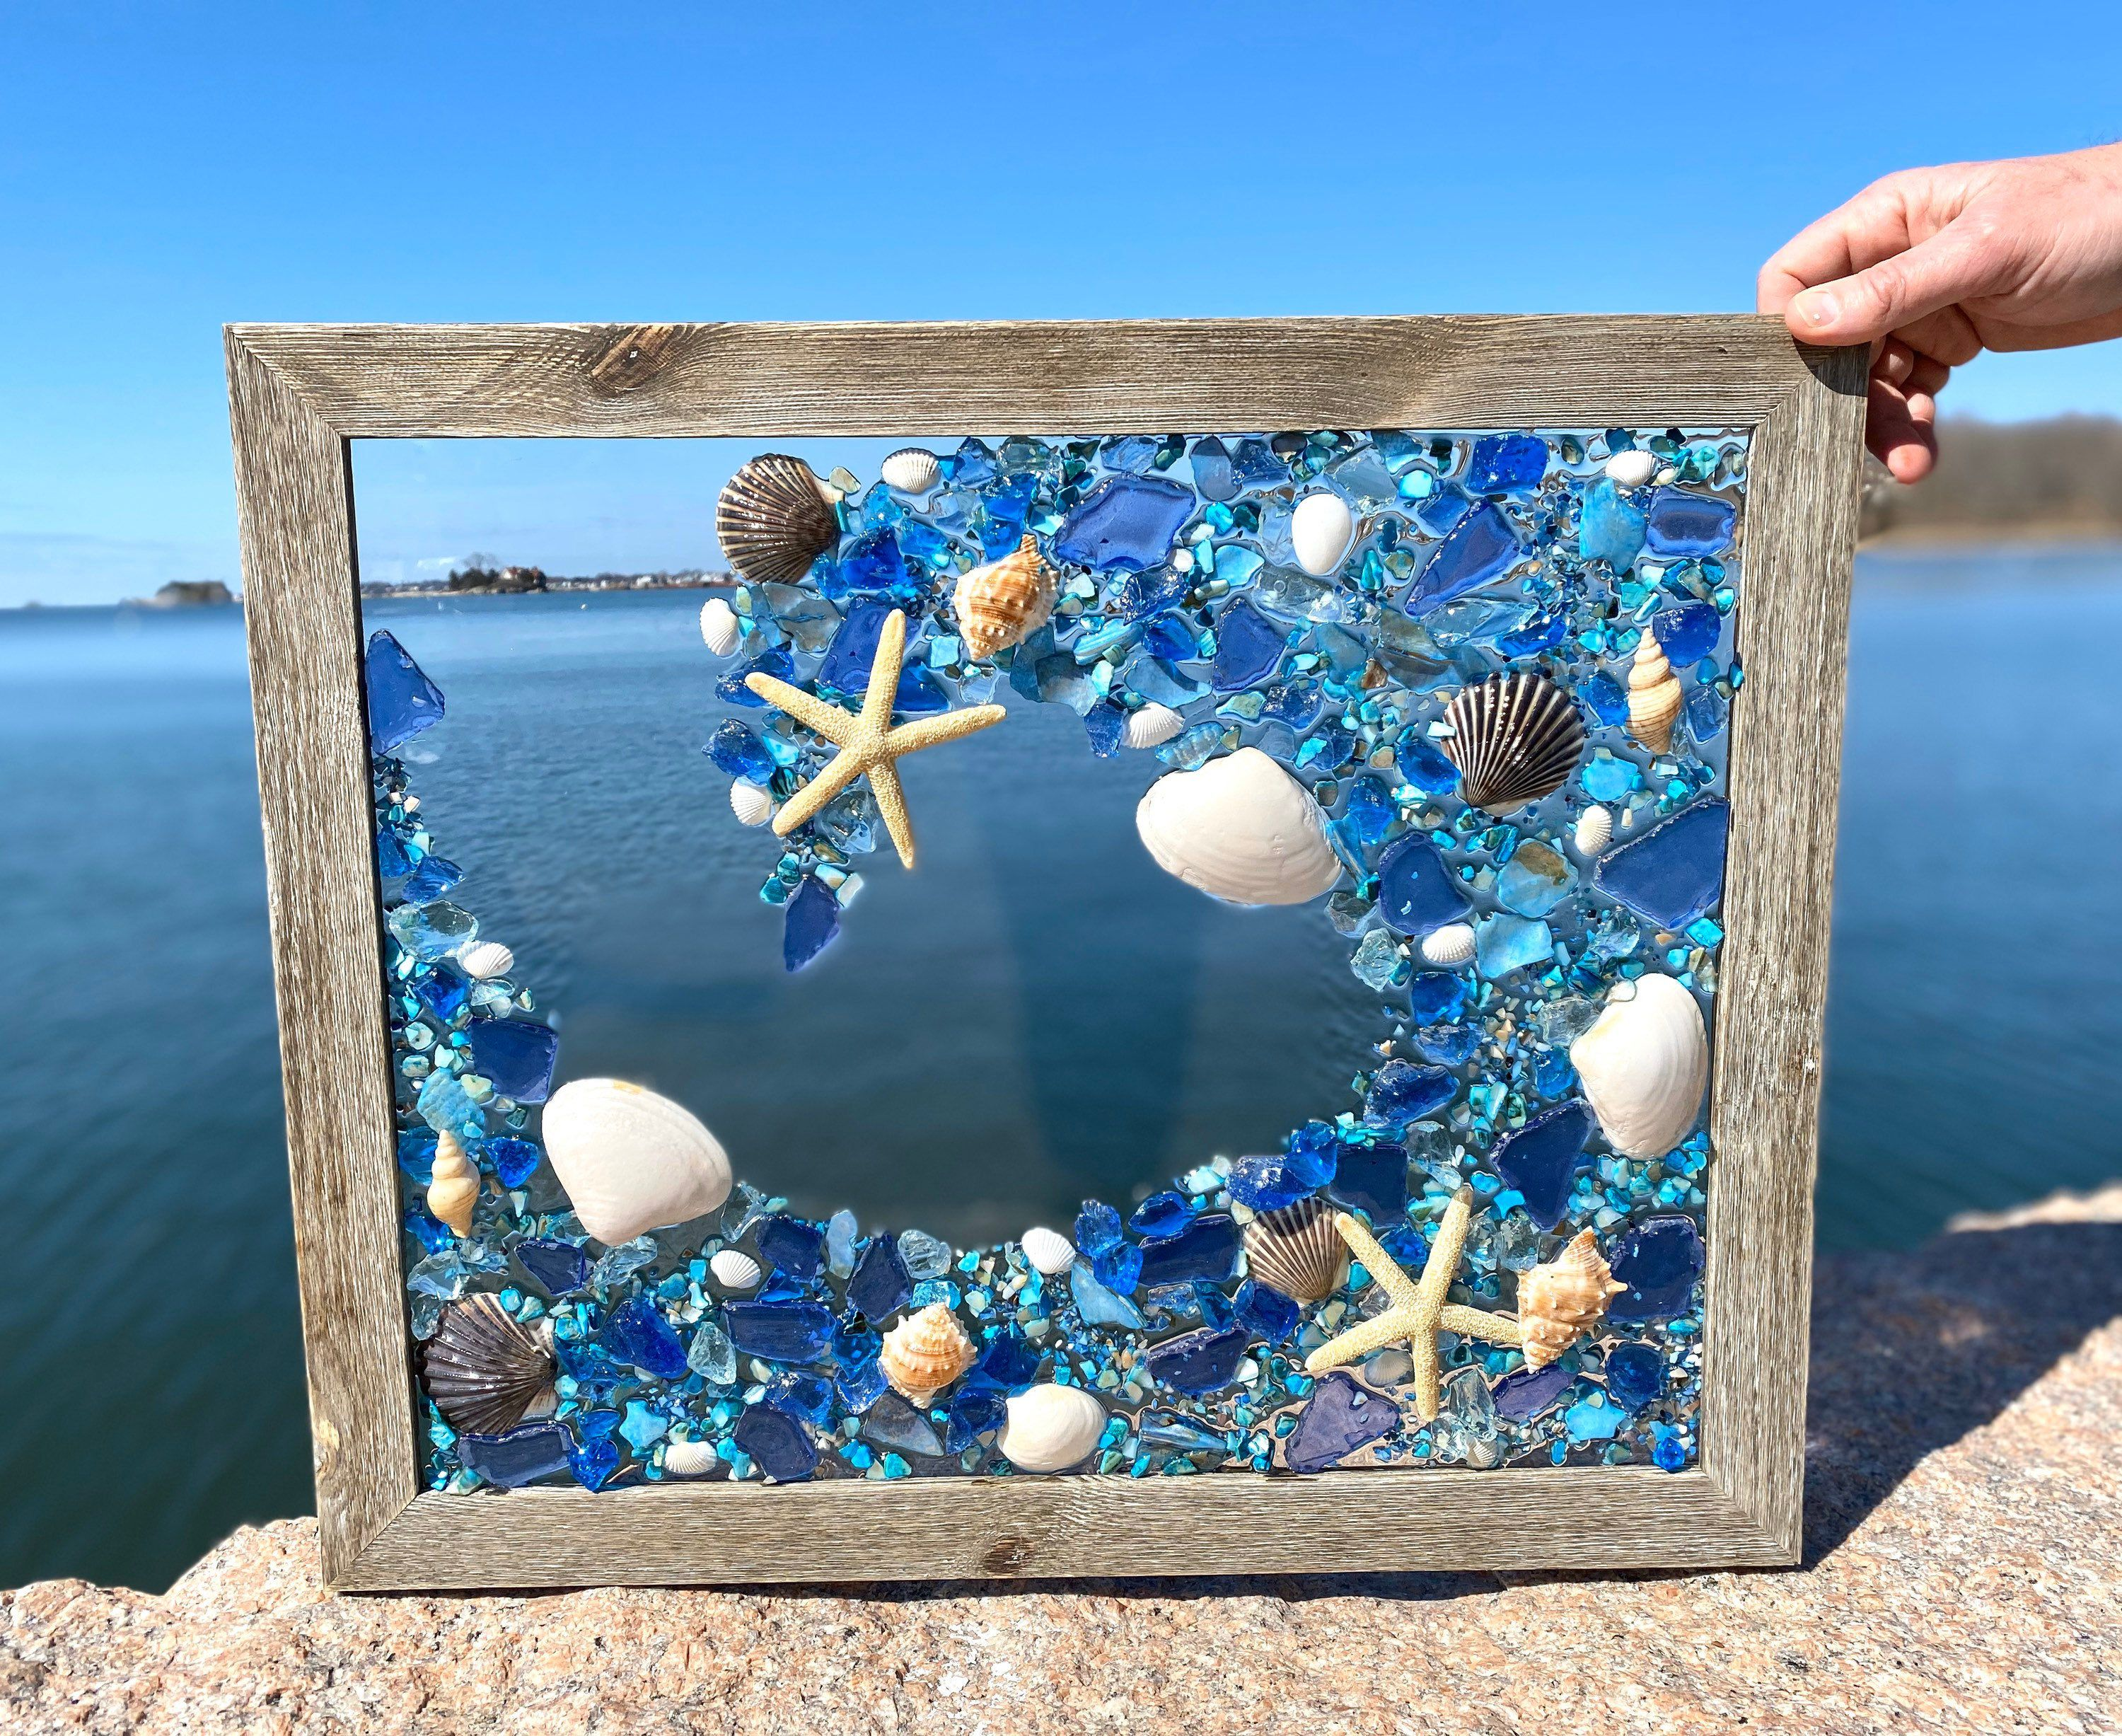 Large 19 X 23 Beach Glass Panel Frame With Shells Free Shipping Mermaid Gifts Beach House Decor In 2020 Beach House Decor Beach Glass Art Mermaid Gifts